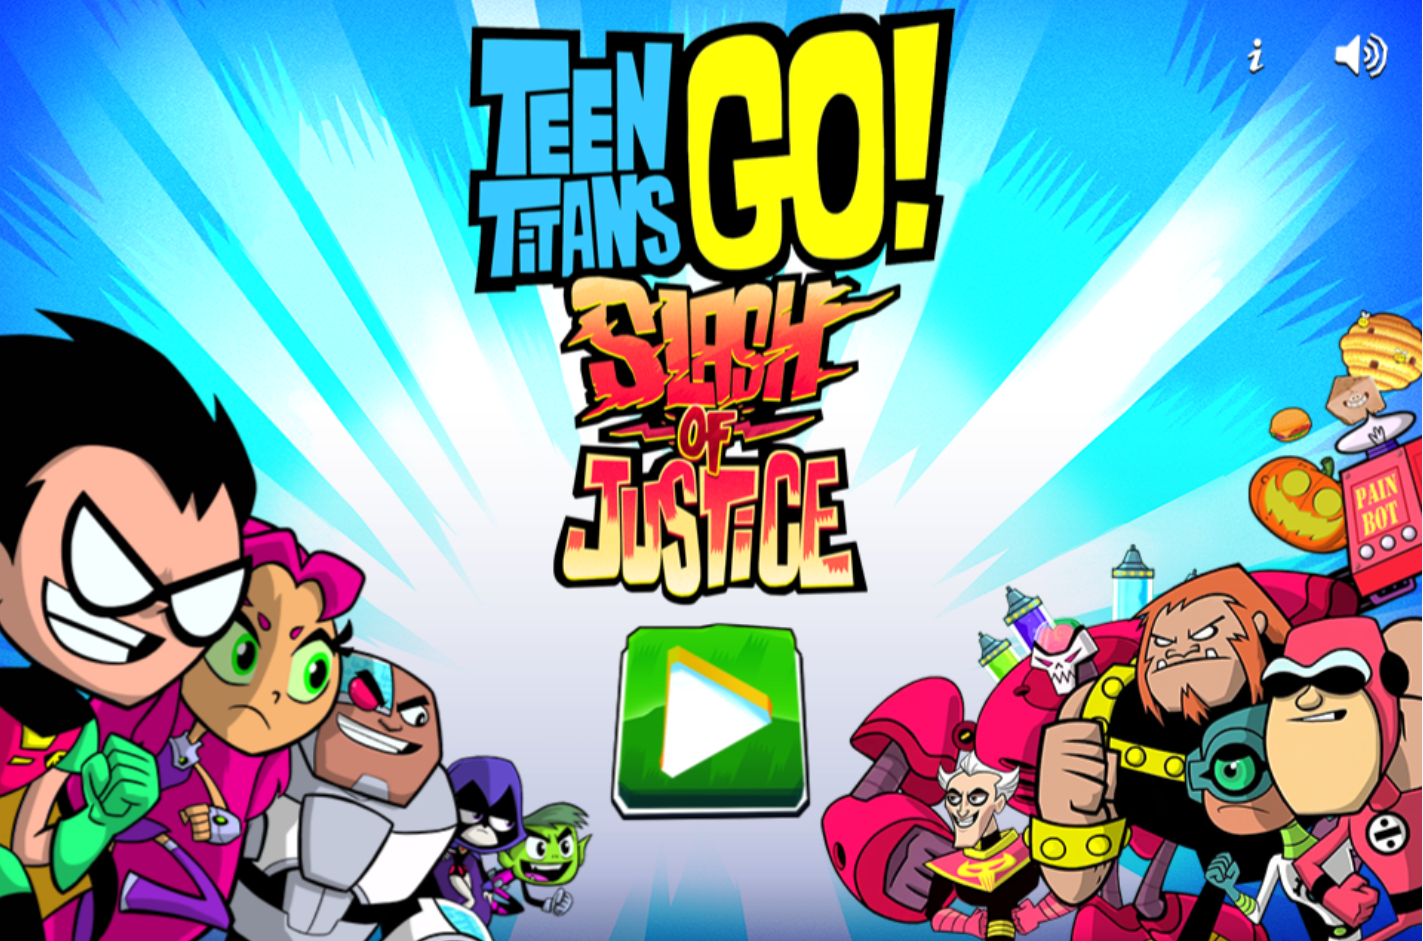 Teen titans free game